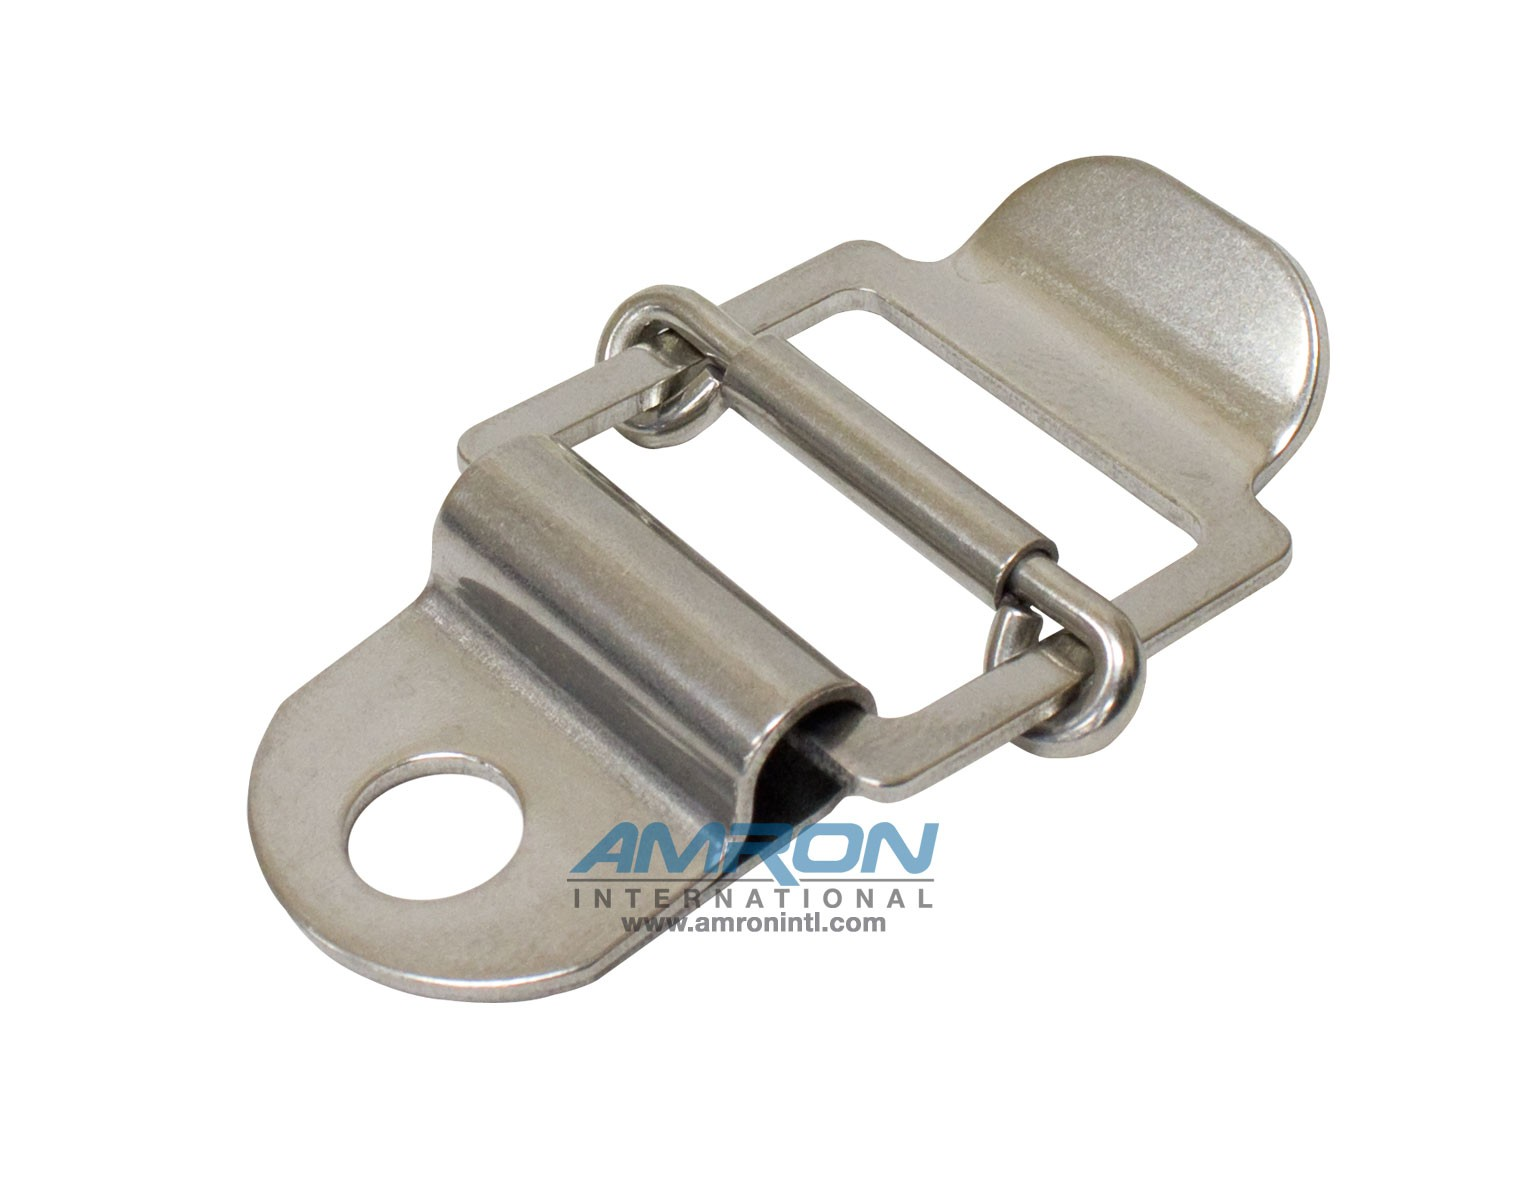 Amron International 345-0004-01 Strap Buckle